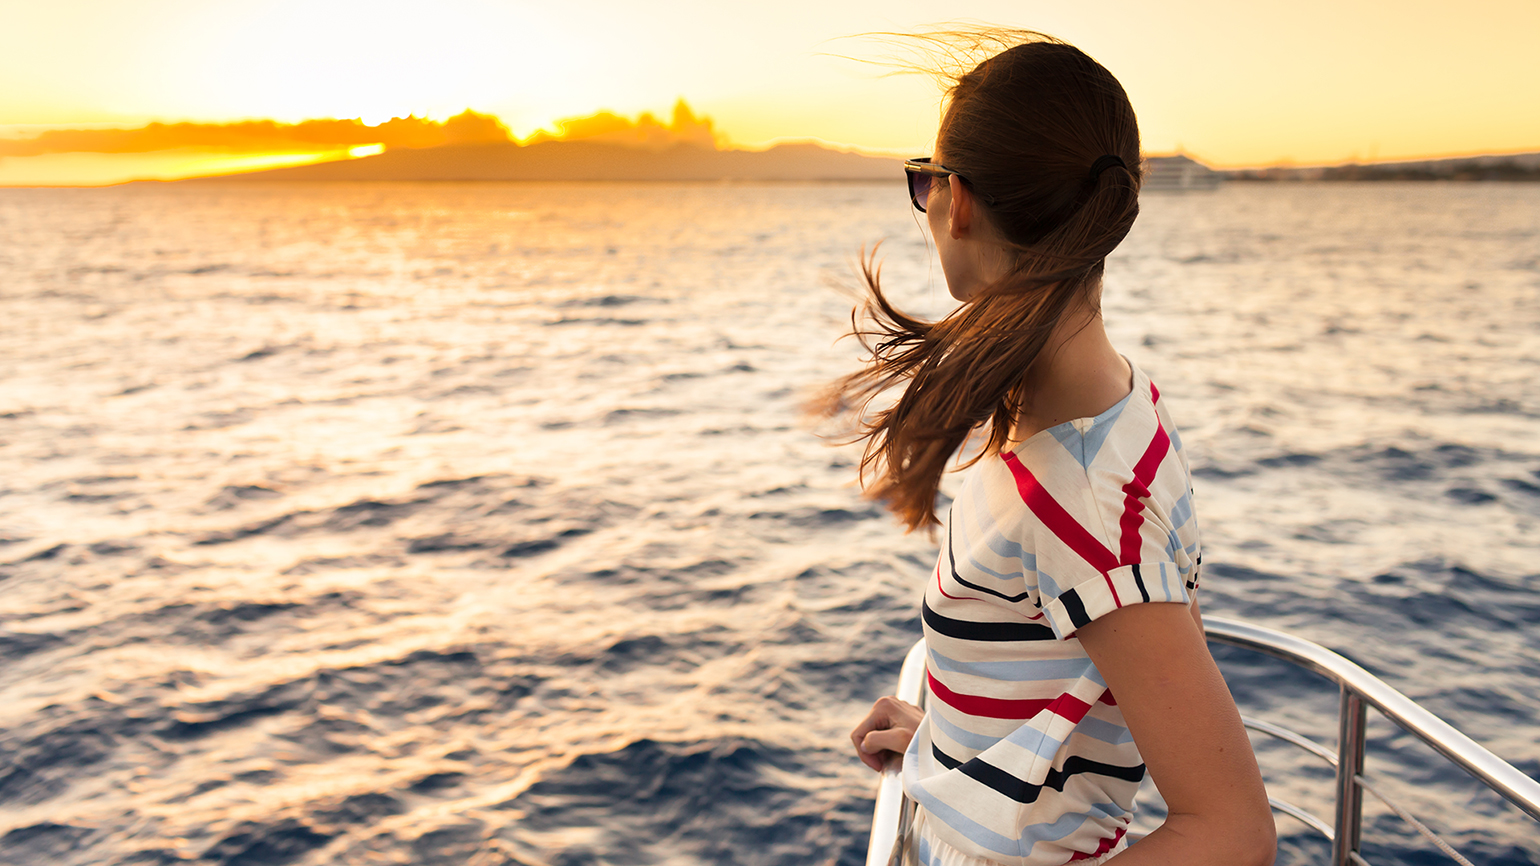 A woman on a ferry looks out at the sunrise